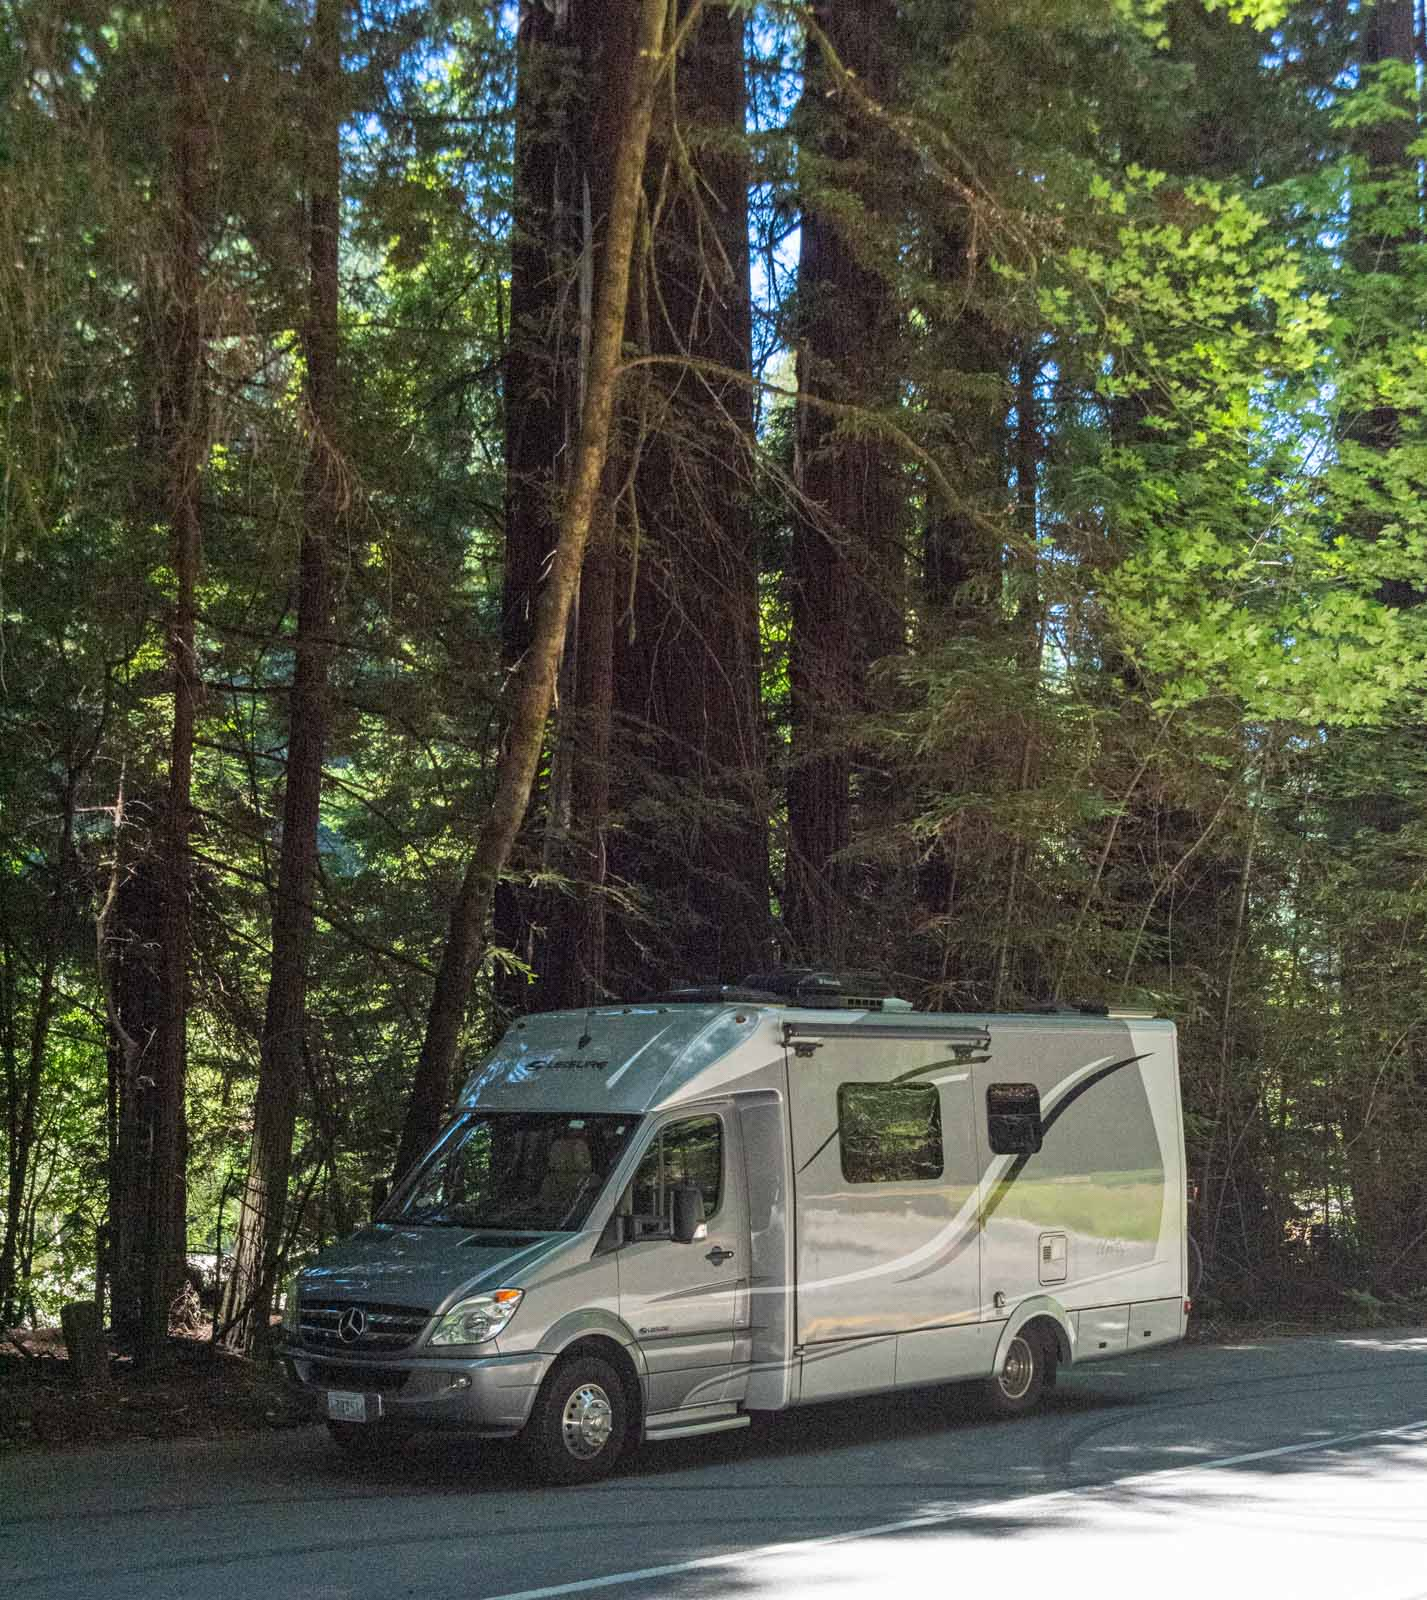 The Doodle, our Leisure Travel Van in the Redwoods